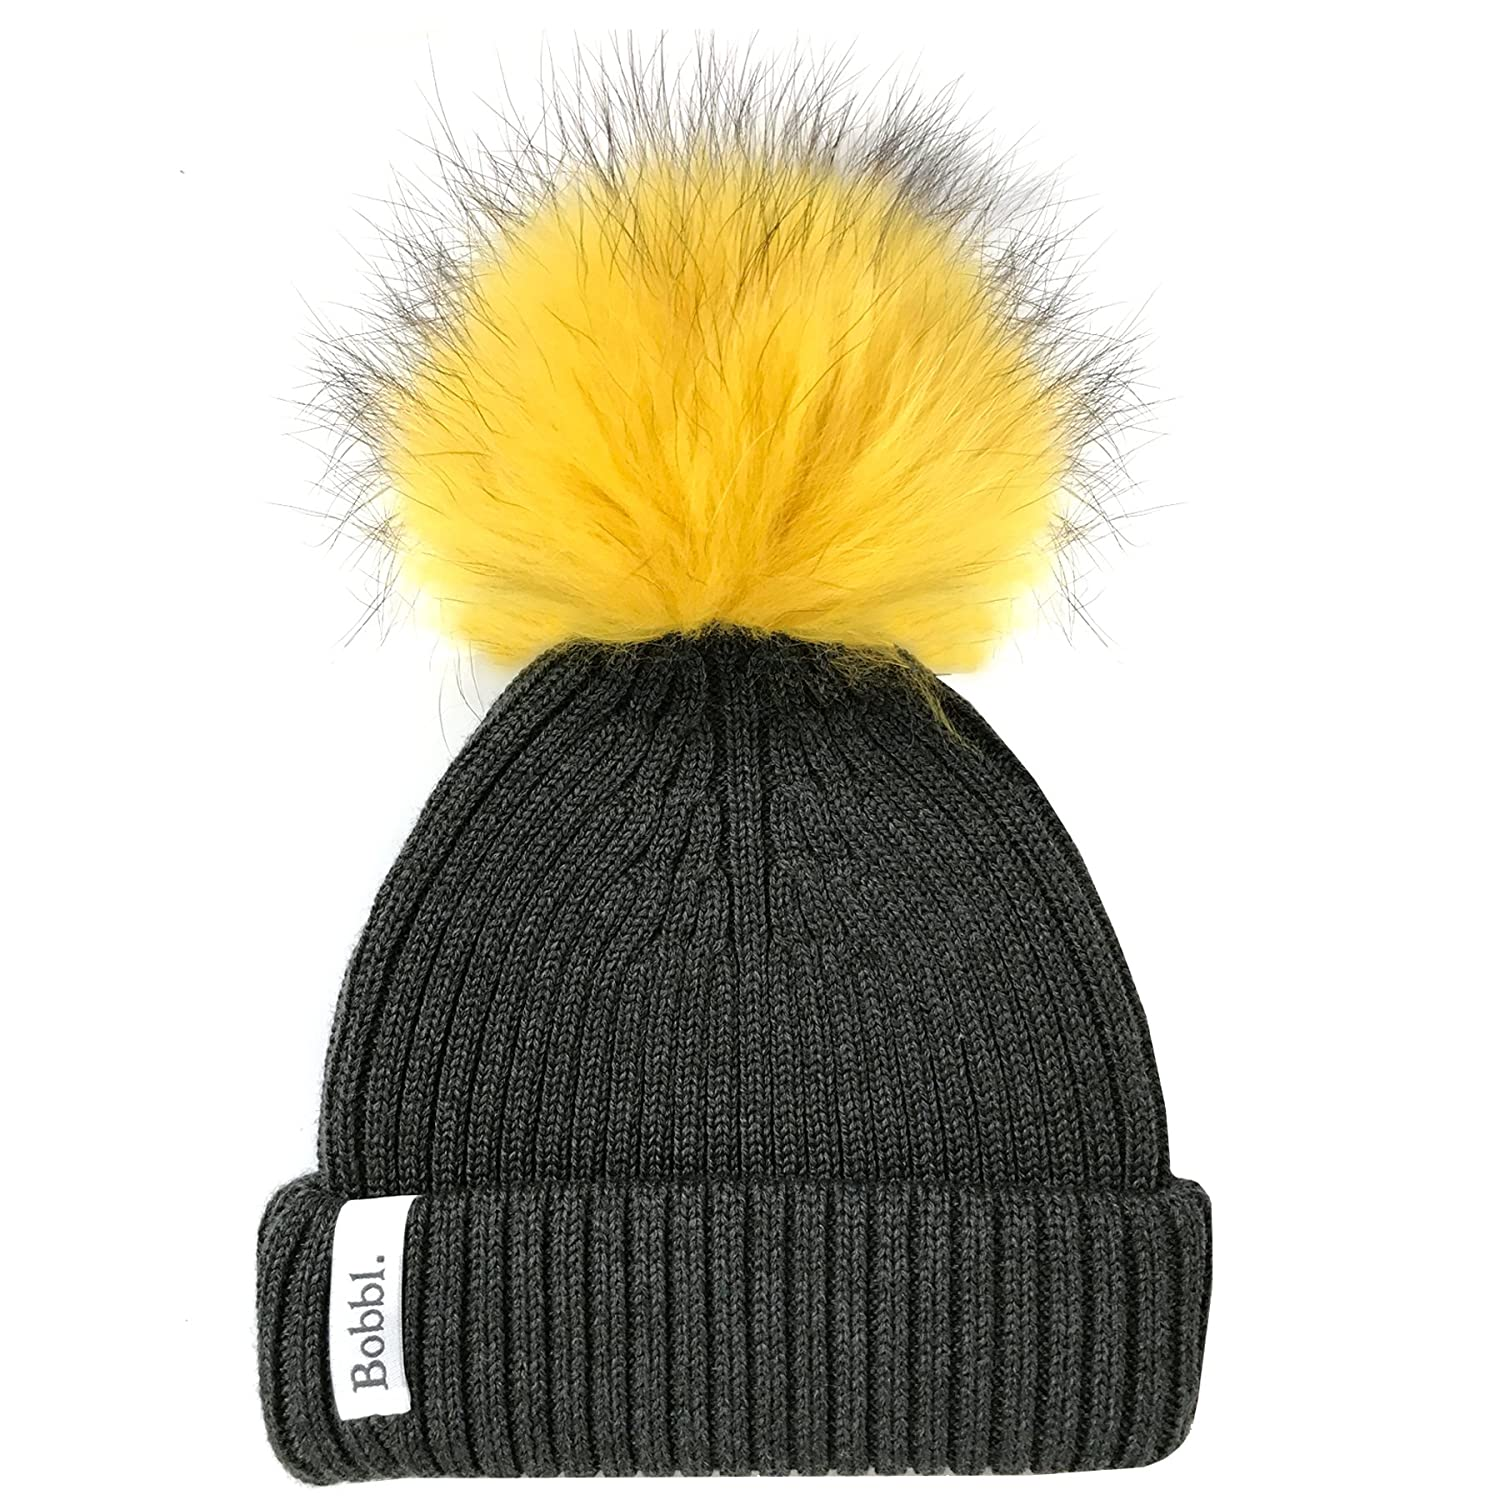 1434e9ca695 Charcoal Grey Classic Hat   Yellow Big Pom Pom  Amazon.co.uk  Clothing